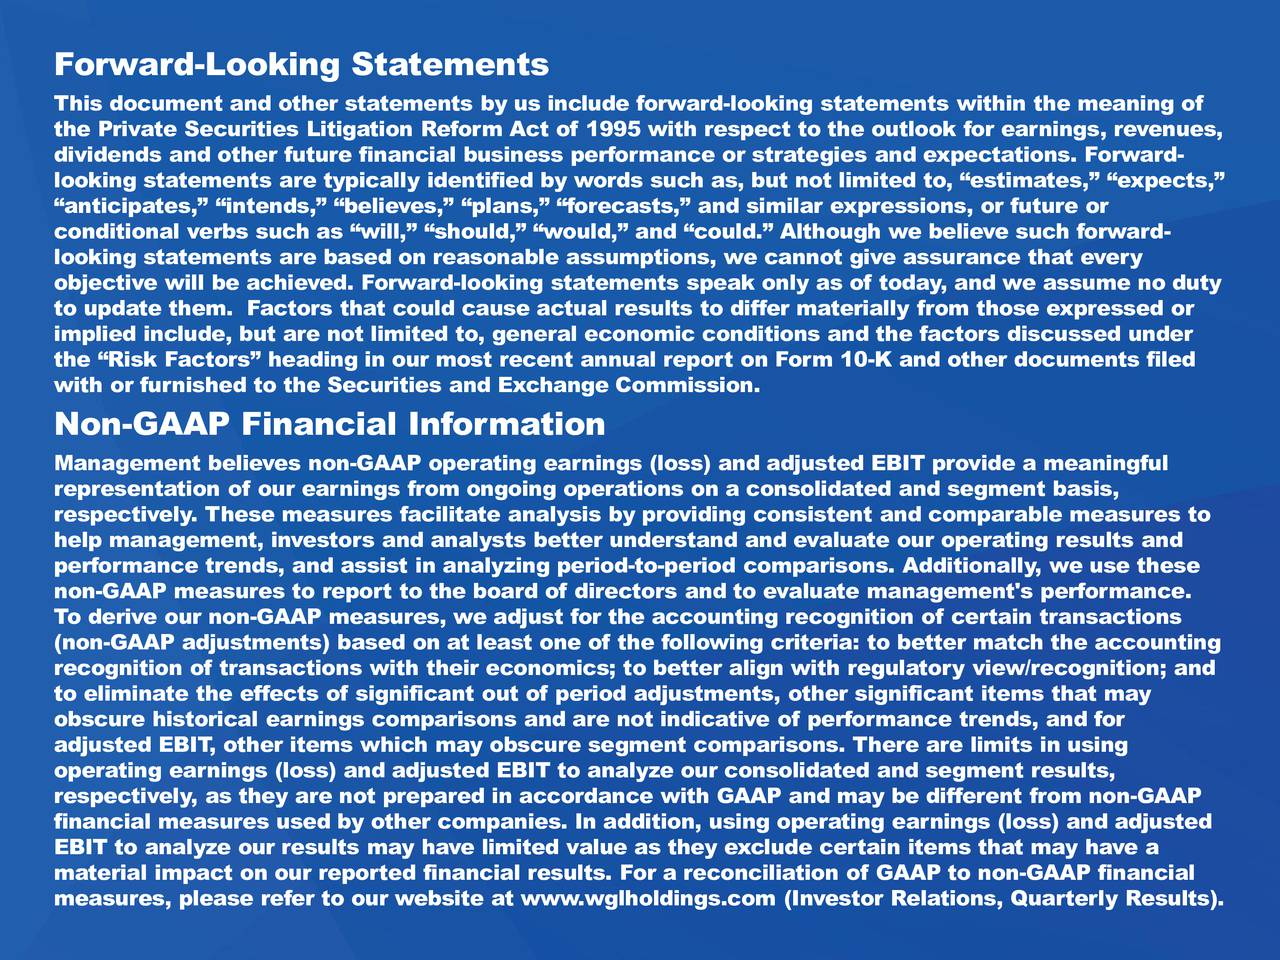 This document and other statements by us include forward-looking statements within the meaning of the Private Securities Litigation Reform Act of 1995 with respect to the outlook for earnings, revenues, dividends and other future financial business performance or strategies and expectations. Forward- looking statements are typically identified by words such as, but not limited to, estimates, expects, anticipates, intends, believes, plans, forecasts, and similar expressions, or future or conditional verbs such as will, should, would, and could. Although we believe such forward- looking statements are based on reasonable assumptions, we cannot give assurance that every objective will be achieved. Forward-looking statements speak only as of today, and we assume no duty to update them. Factors that could cause actual results to differ materially from those expressed or implied include, but are not limited to, general economic conditions and the factors discussed under the Risk Factors heading in our most recent annual report on Form 10-K and other documents filed with or furnished to the Securities and Exchange Commission. Non-GAAP Financial Information Management believes non-GAAP operating earnings (loss) and adjusted EBIT provide a meaningful representation of our earnings from ongoing operations on a consolidated and segment basis, respectively. These measures facilitate analysis by providing consistent and comparable measures to help management, investors and analysts better understand and evaluate our operating results and performance trends, and assist in analyzing period-to-period comparisons. Additionally, we use these non-GAAP measures to report to the board of directors and to evaluate management's performance. To derive our non-GAAP measures, we adjust for the accounting recognition of certain transactions (non-GAAP adjustments) based on at least one of the following criteria: to better match the accounting recognition of transactions with their economics; t